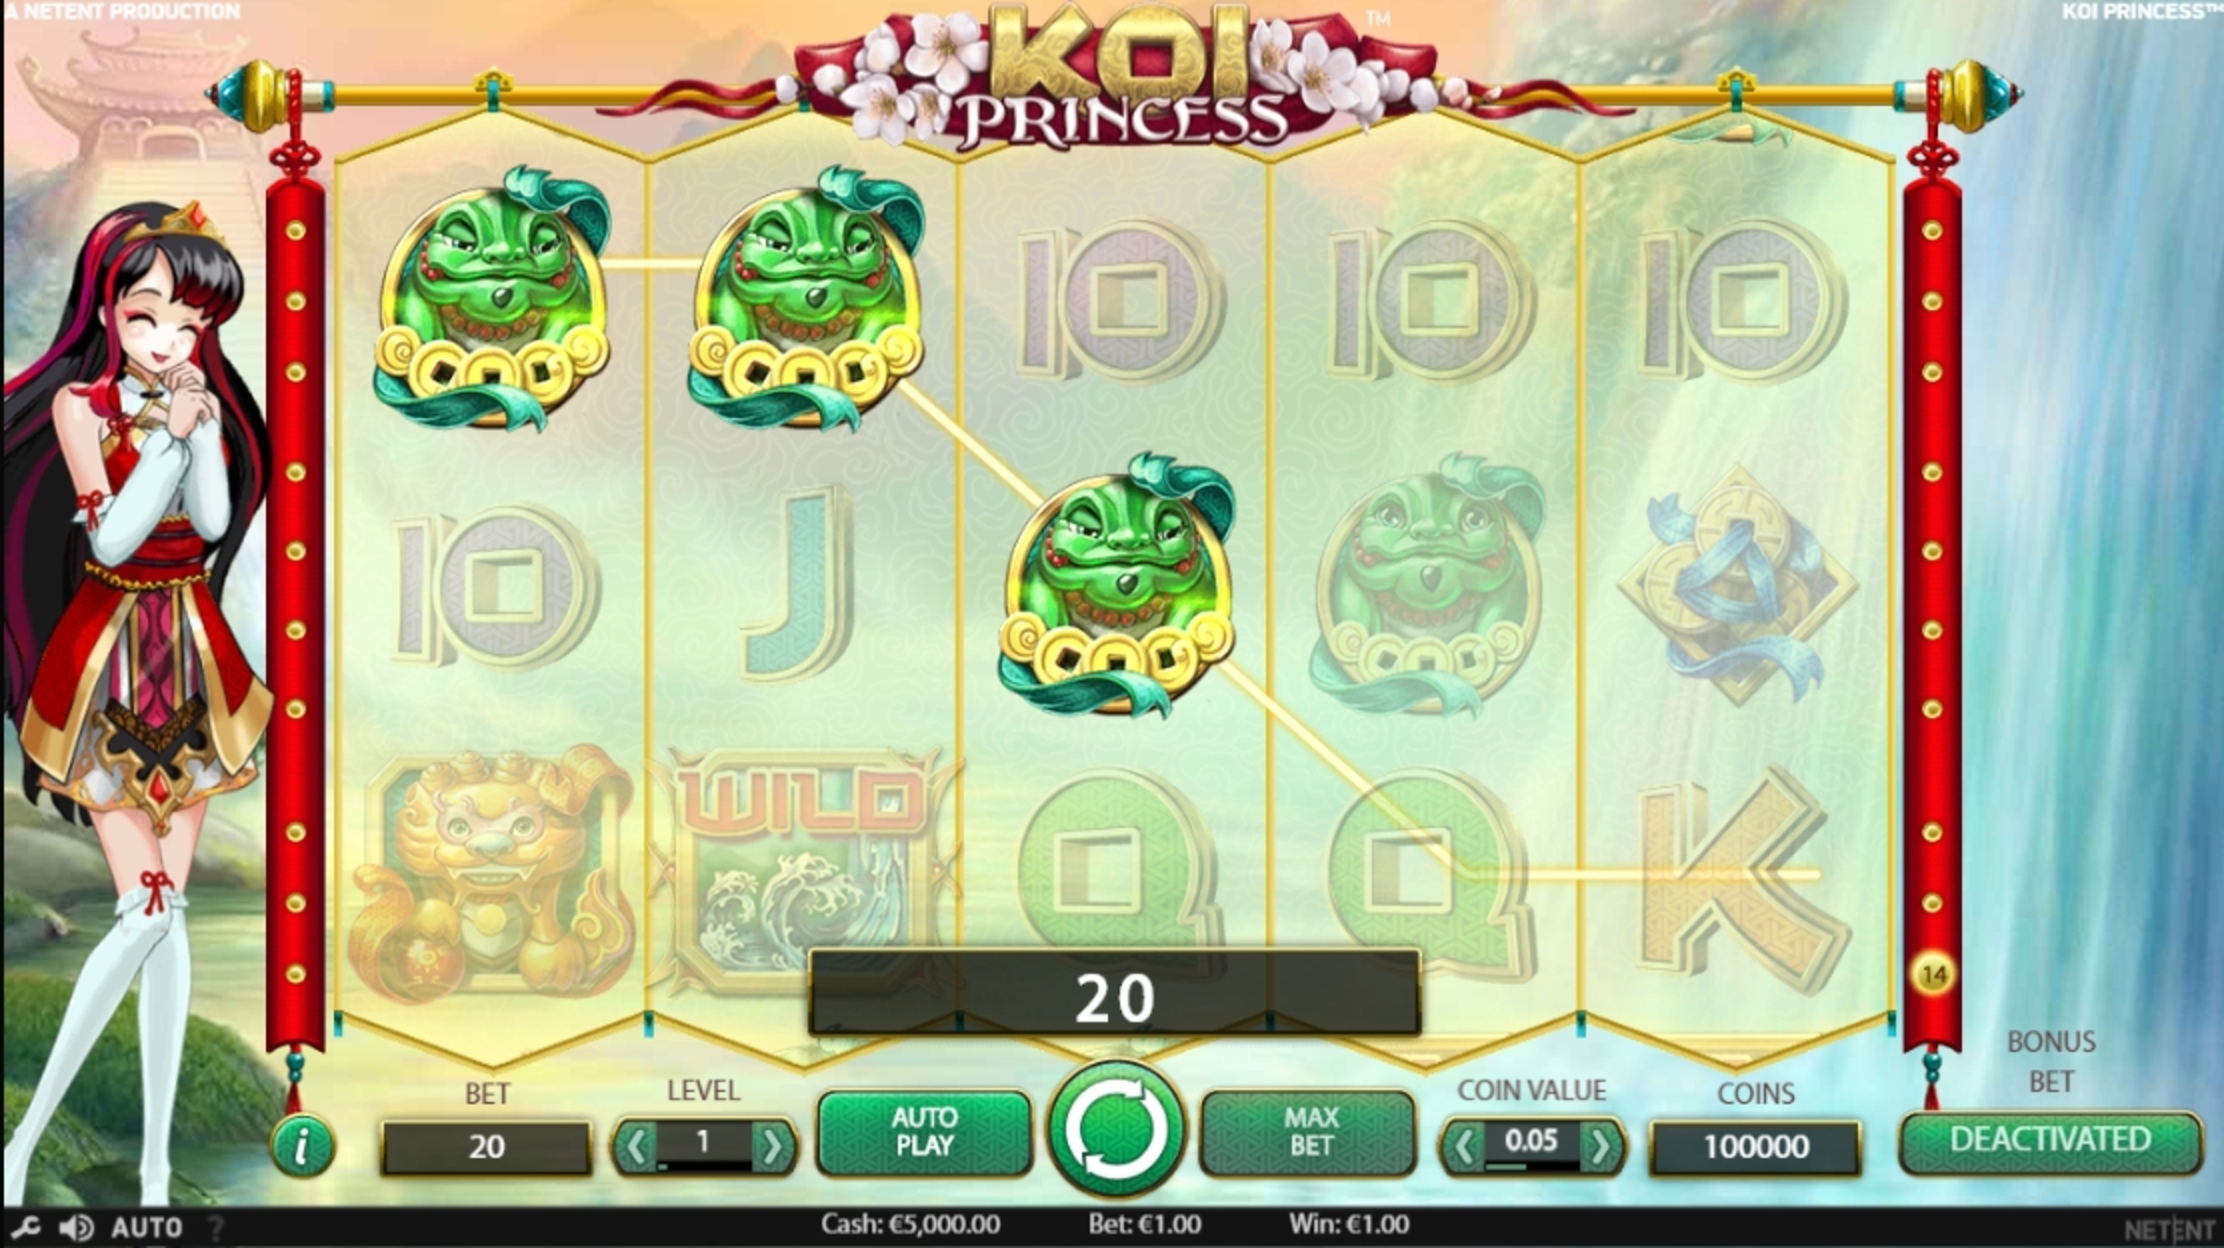 Win Money in Koi Princess Free Slot Game by NetEnt